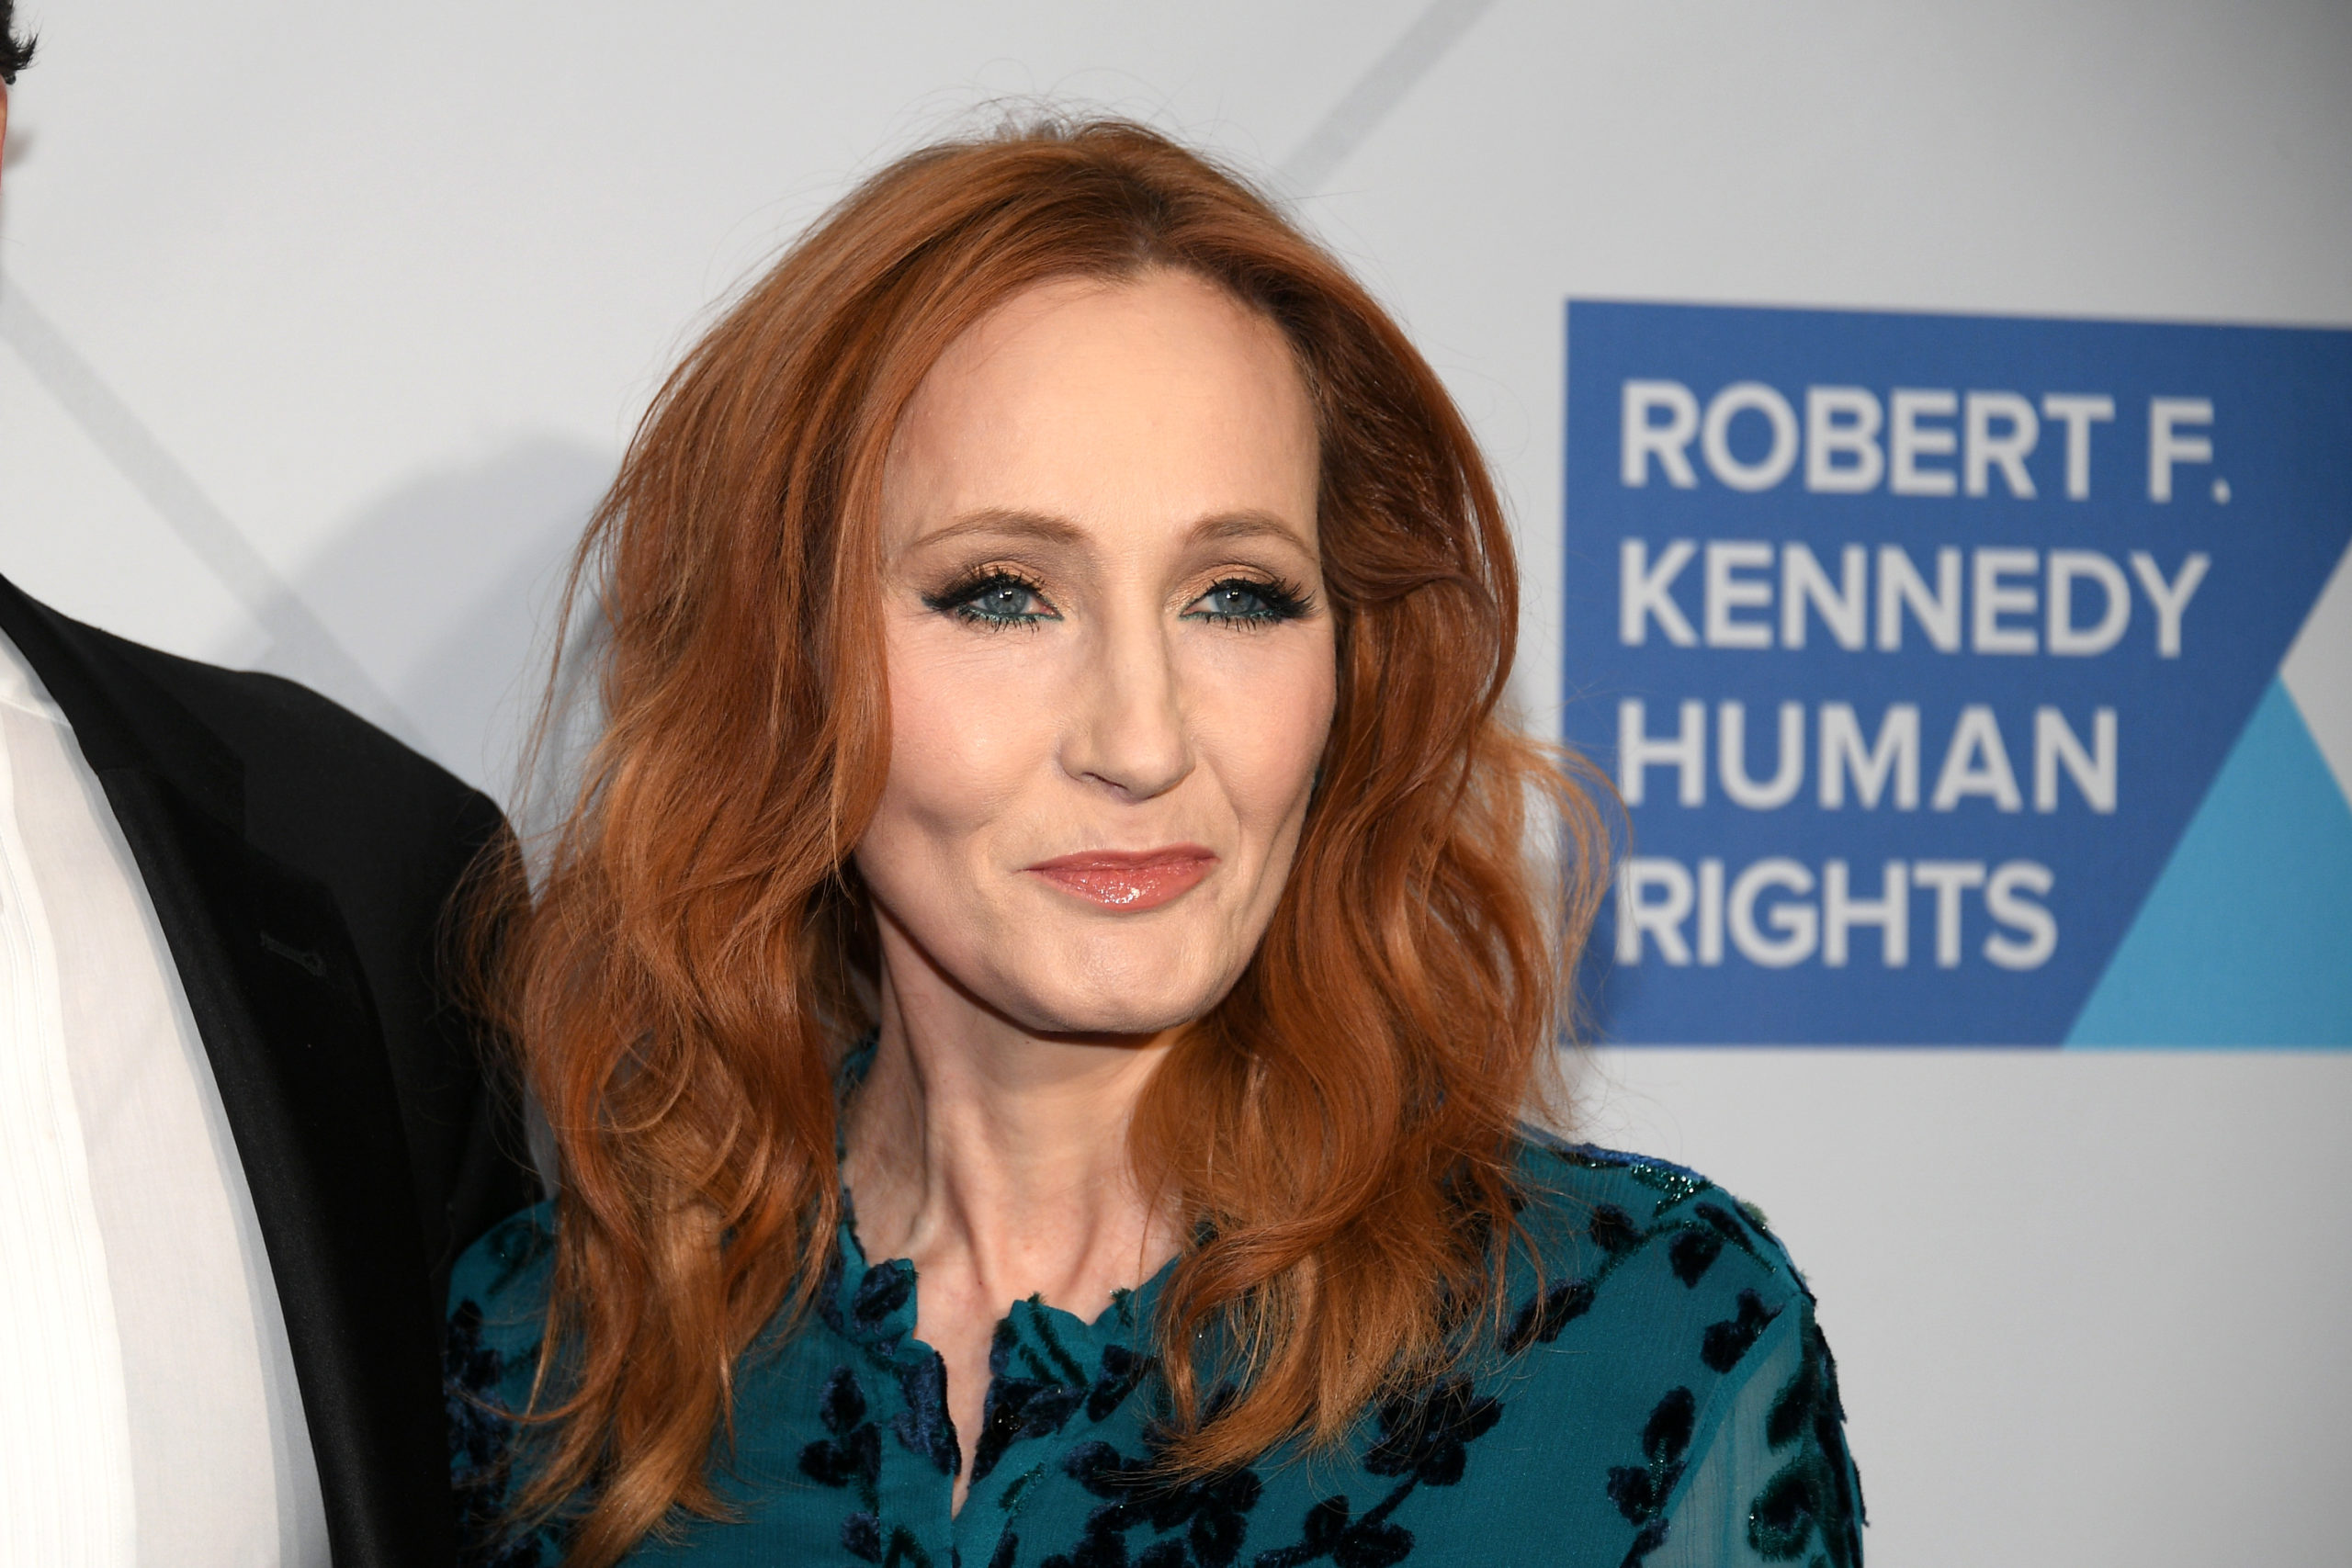 Hachette JK Rowling conflates trans rights with Donald Trump incels and porn